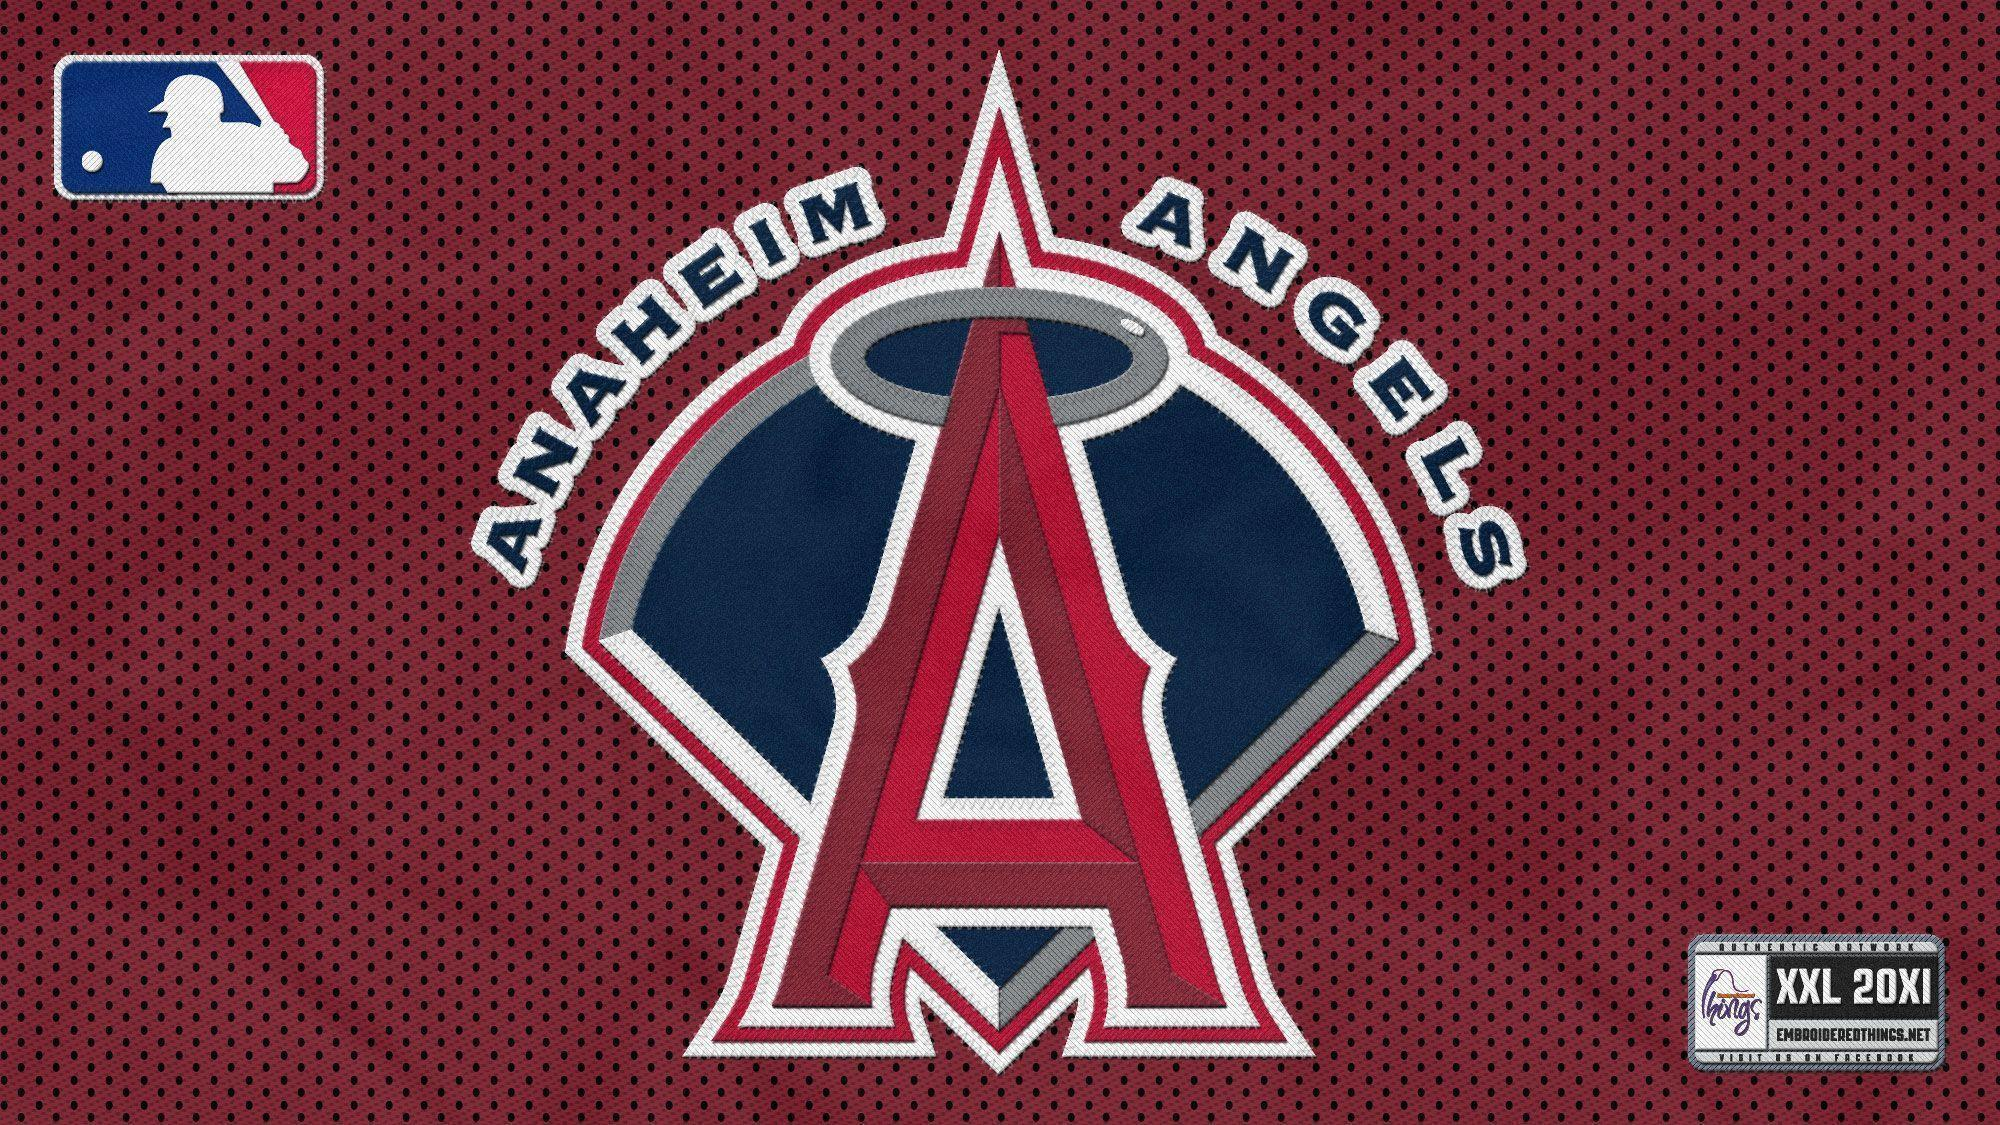 Cached Angels baseball logo images